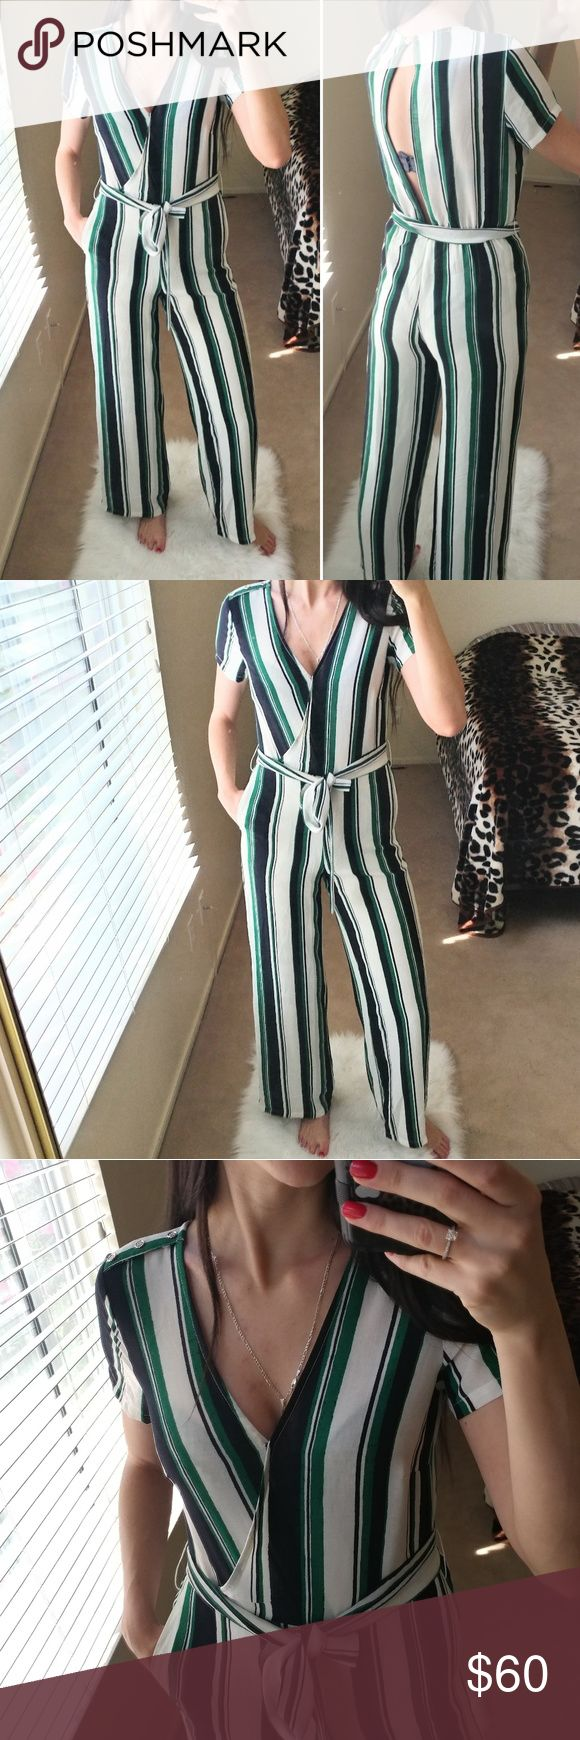 """Lucy Paris stripped jumpsuit Short sleeve Open back  Black, white and green stripes  Condition: new with tags Size: XS Measures:  Bust flat 19"""" Shoulders 16.5""""  Inseam 31.25"""" Length 58"""" Waist flat 13"""" (stretchy)   100% polyester Lucy Paris Pants Jumpsuits & Rompers"""